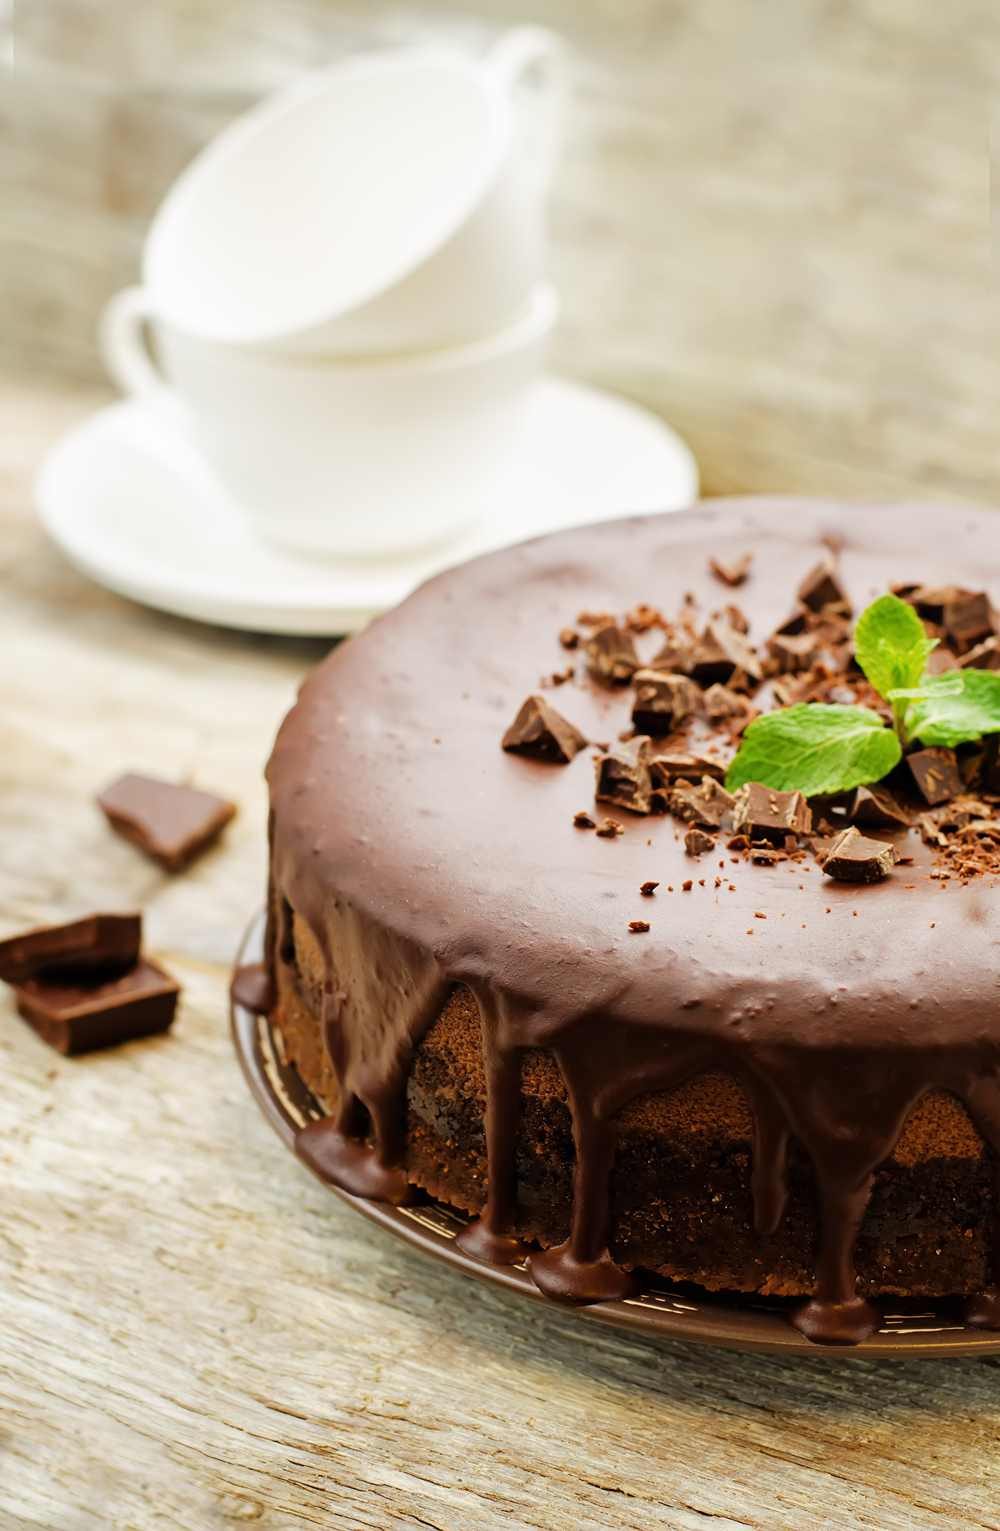 french flourless chocolate cake / gluten free / vegetarian / easy / healthy desserts / special treats / mousse cake / via fashioned by love british fashion blog